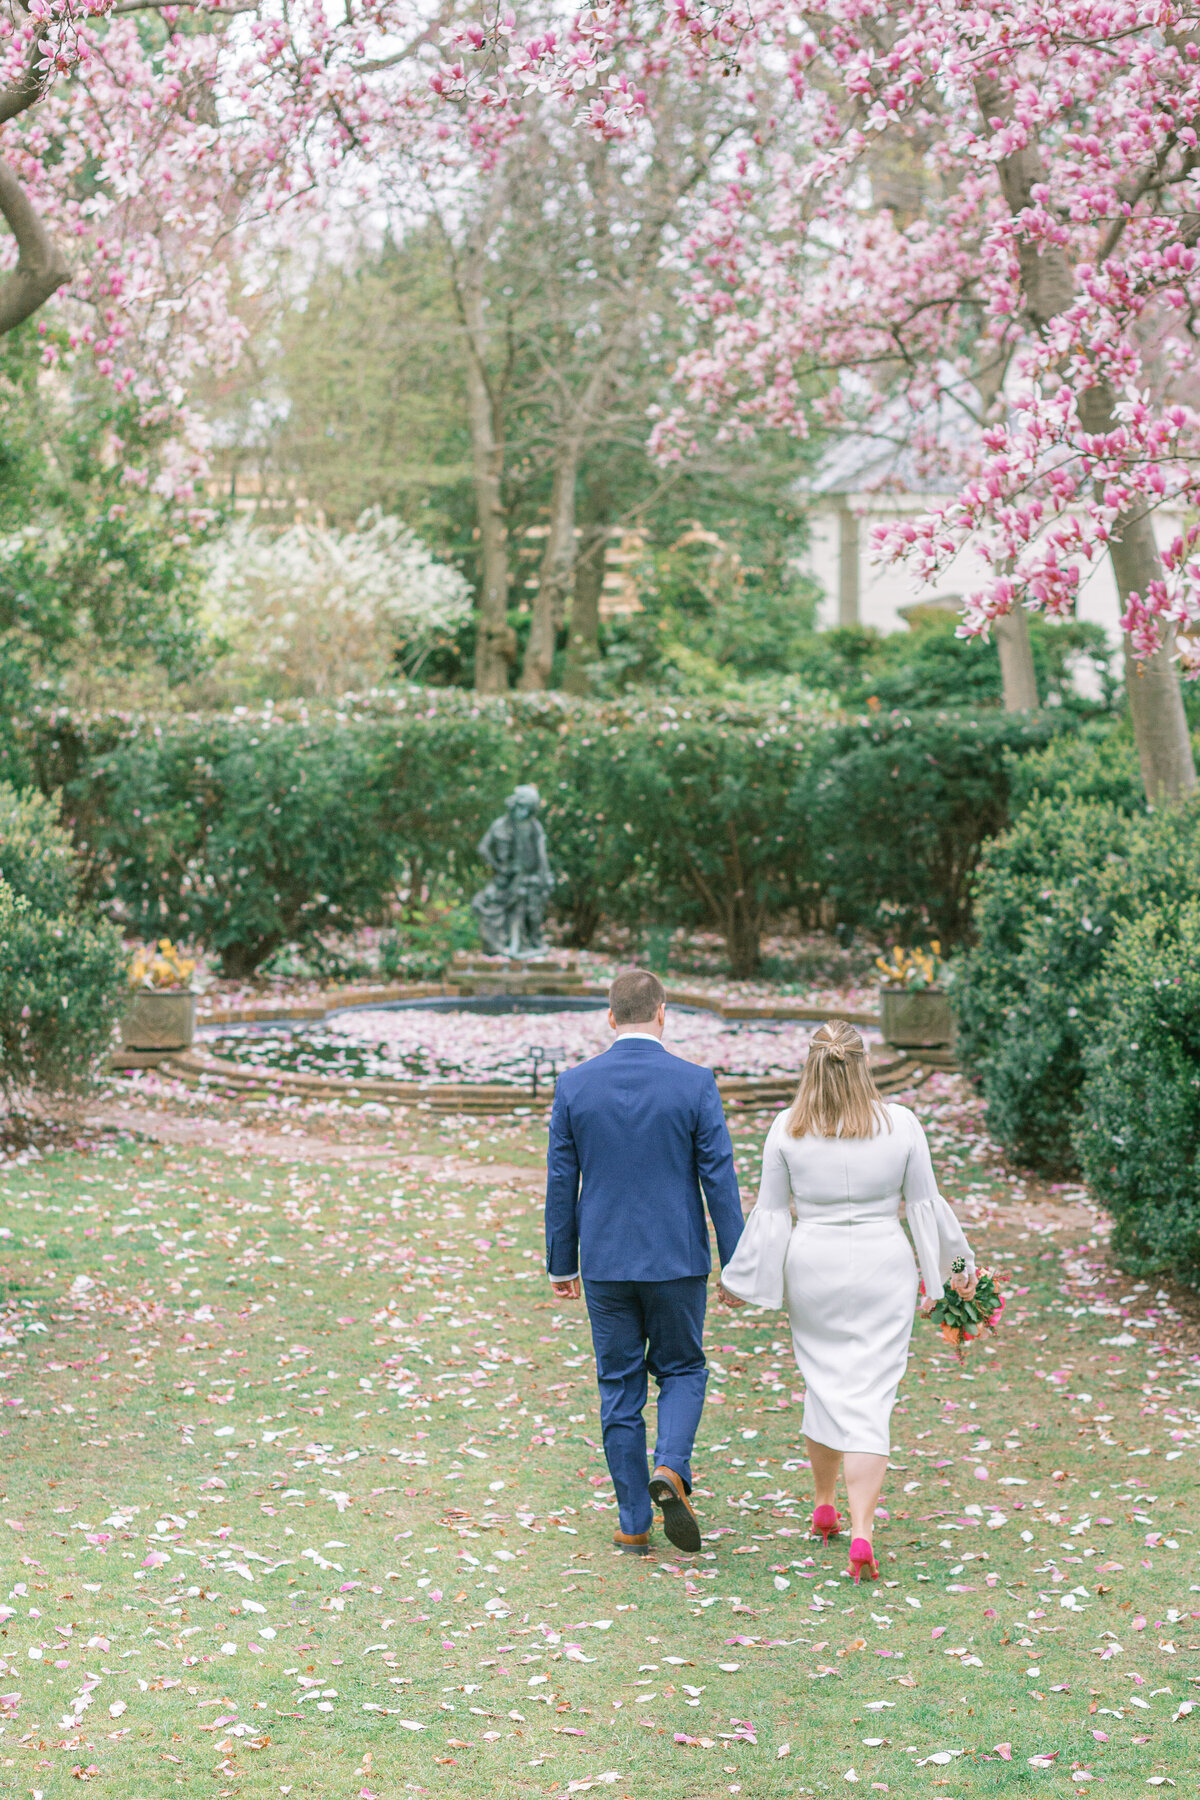 dc-cherry-blossoms-wedding-8932